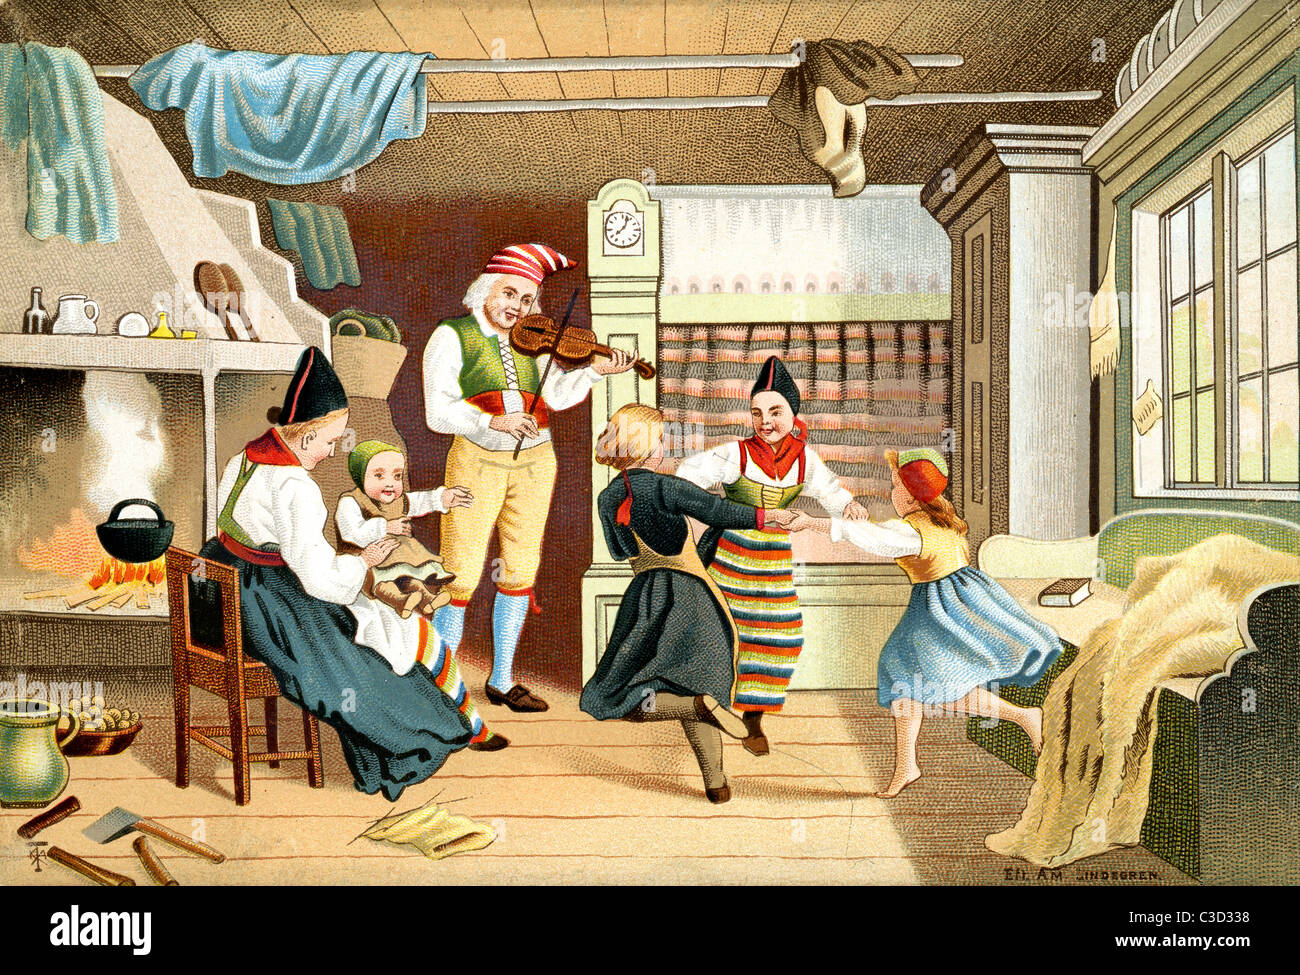 Swedish Family having fun at home with grandfather playing the fiddle and children dancing - Stock Image